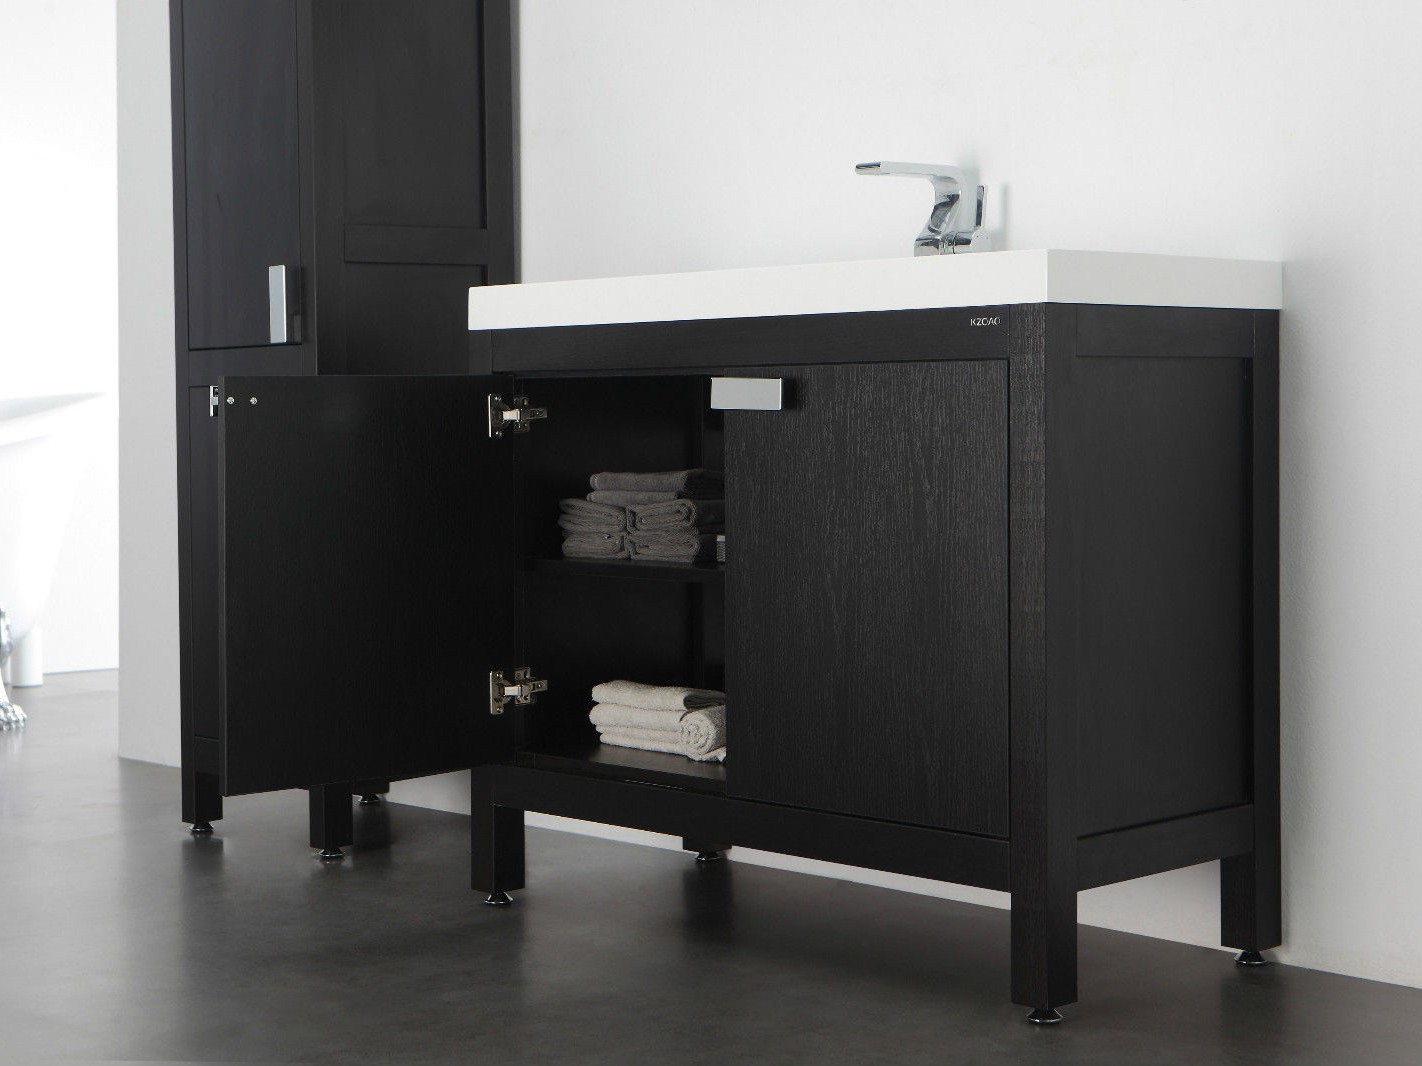 barcelona waschtisch set 80 cm eiche schwarz badewelt badezimmer m bel. Black Bedroom Furniture Sets. Home Design Ideas